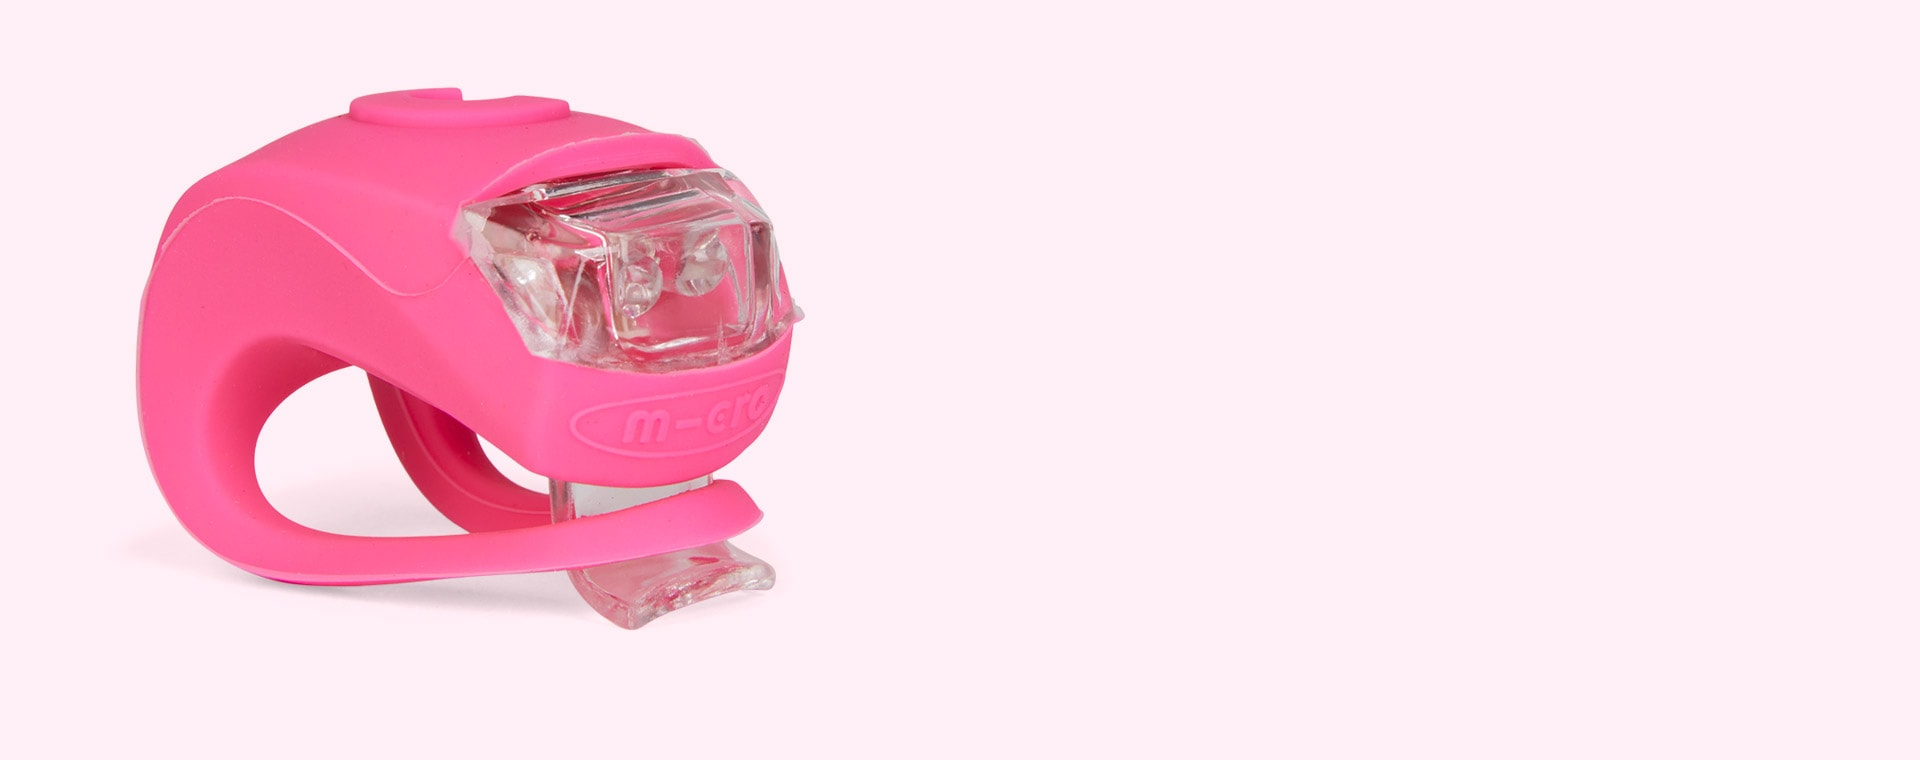 Pink Micro Scooters Light